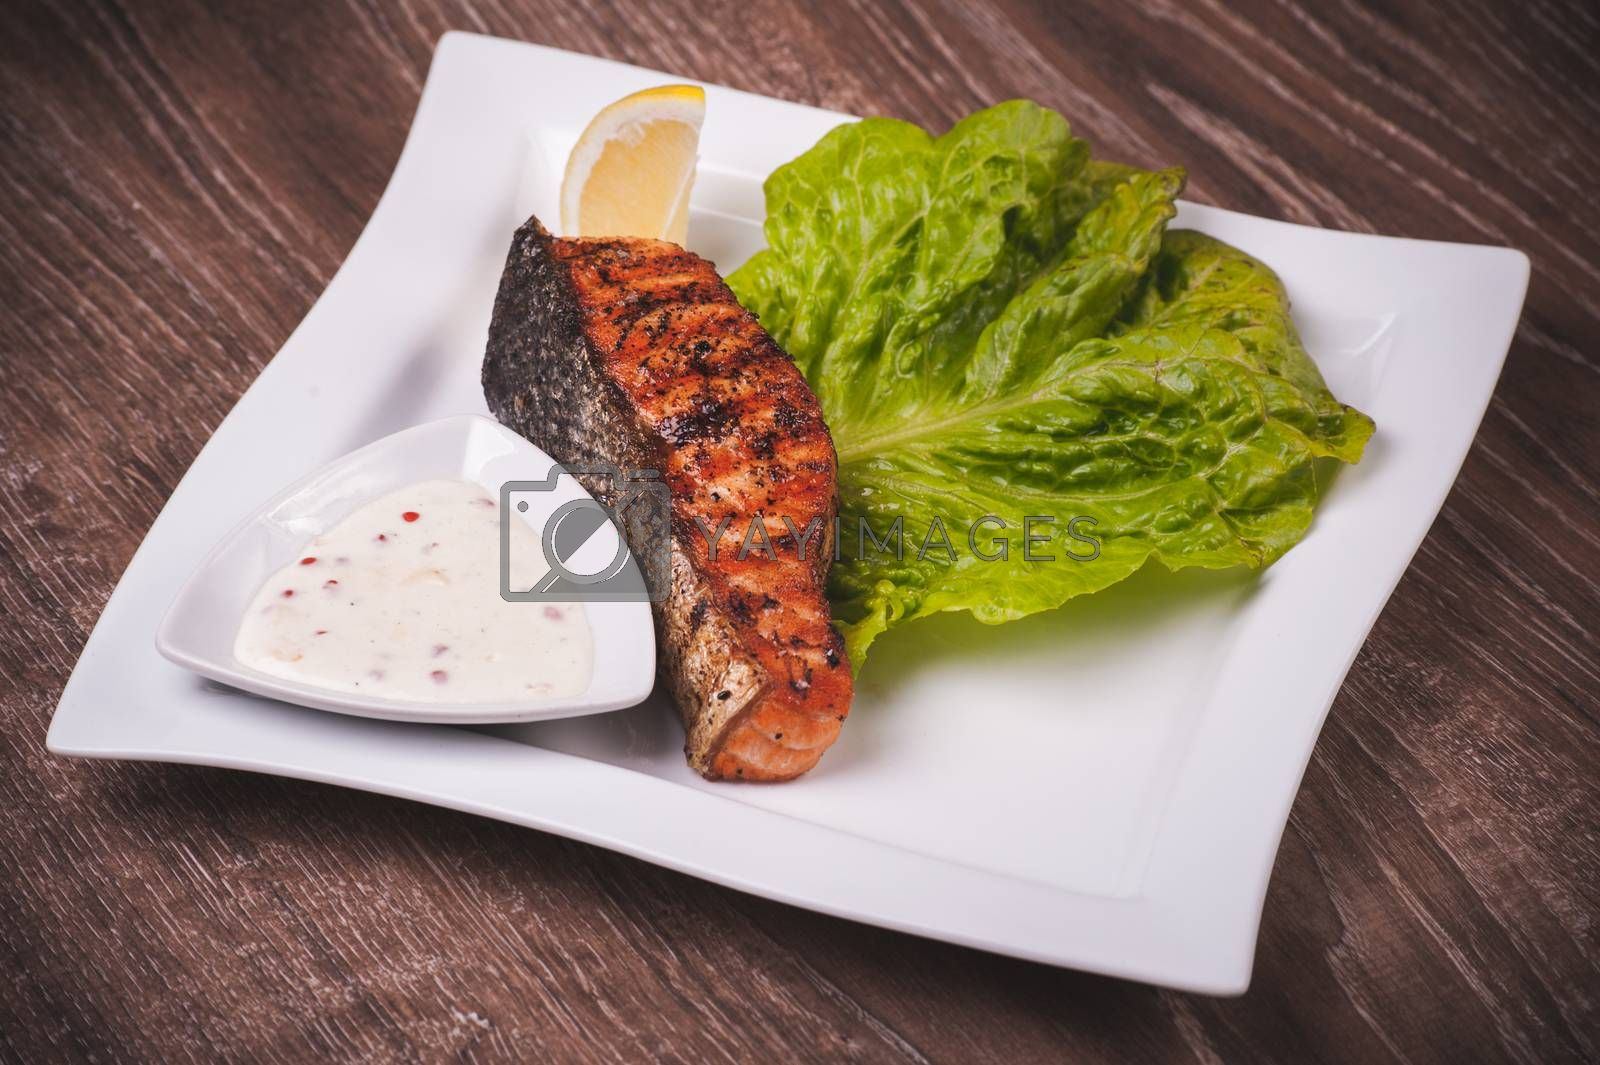 Grilled salmon with tartar sauce on white plate